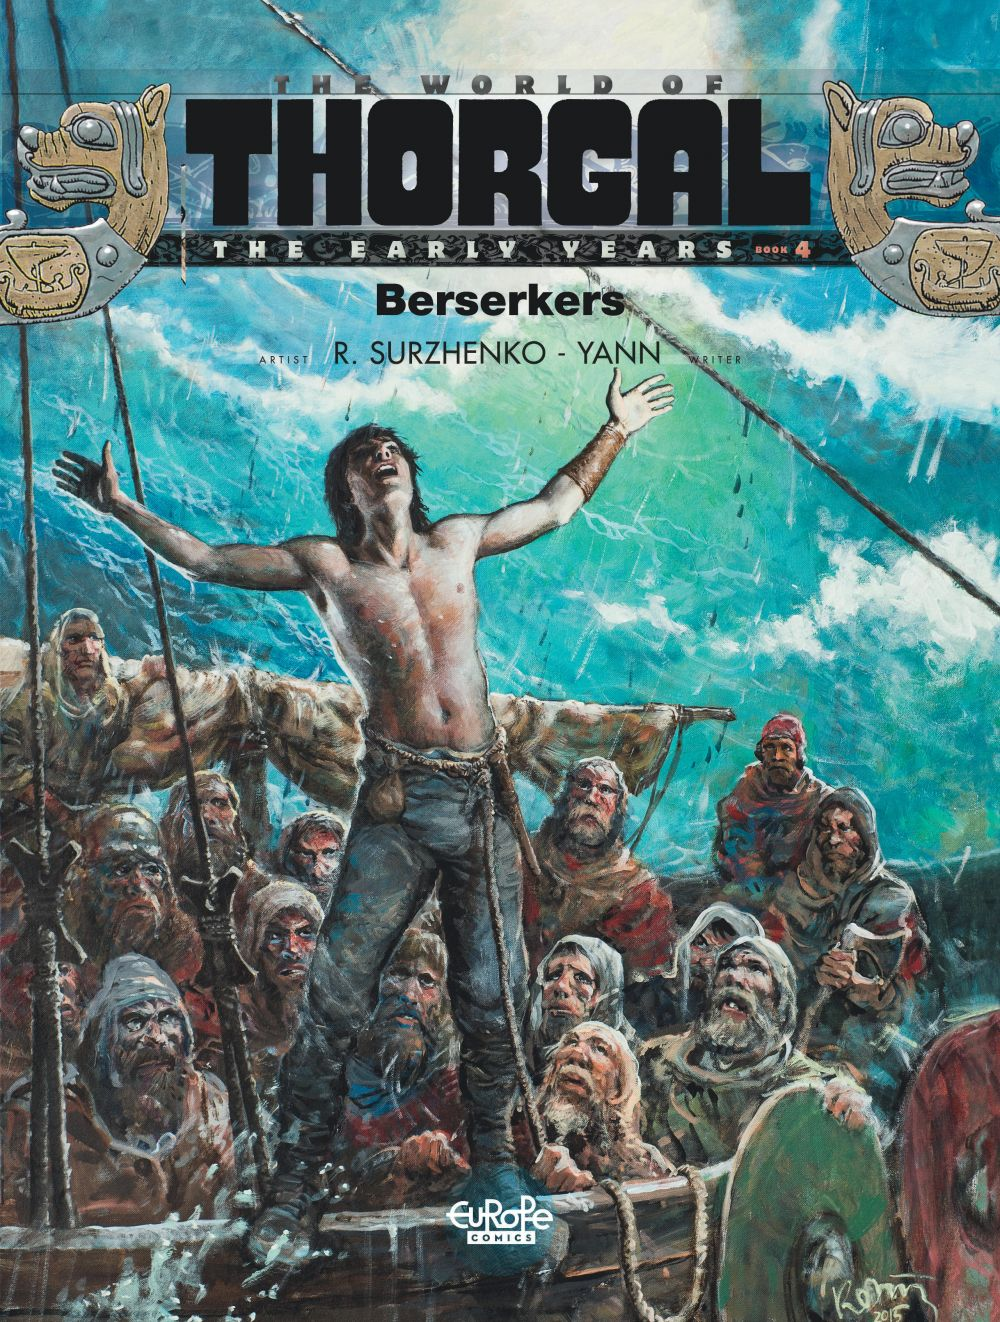 The World of Thorgal: The Early Years - Tome 4 - Berserkers